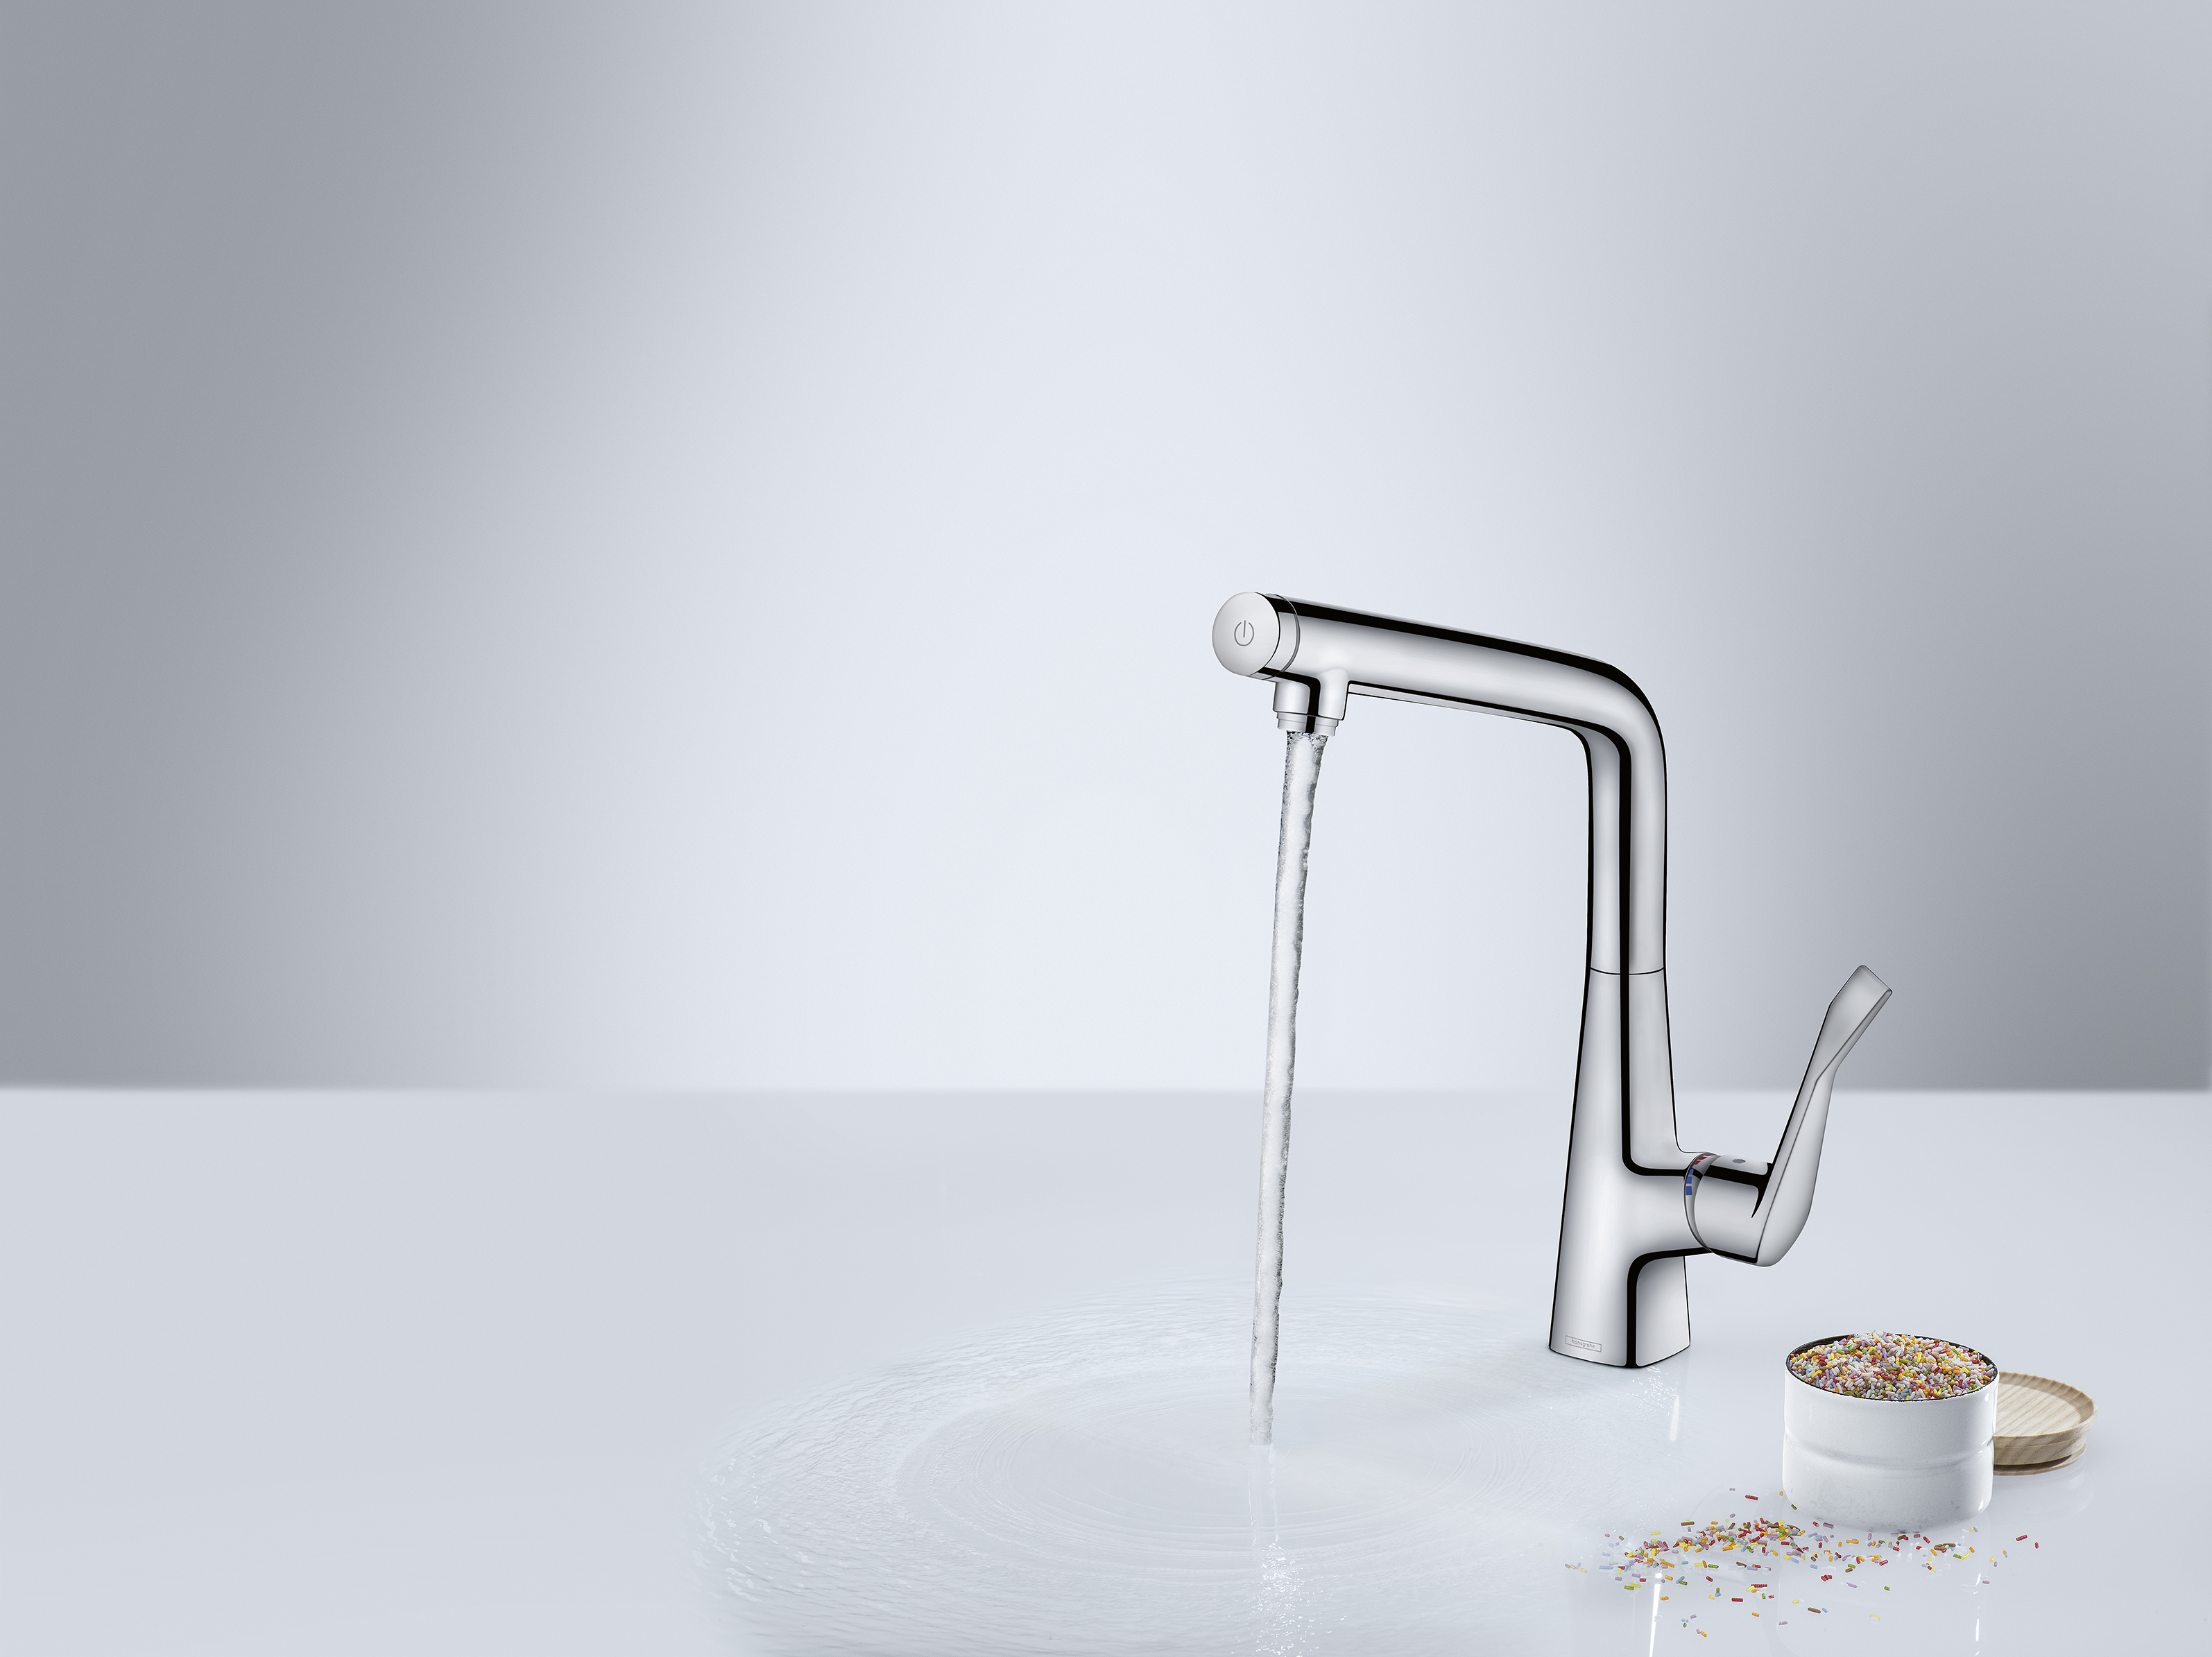 Hansgrohe_MetrisSelect_KitchenMixer _SugarSprinkles